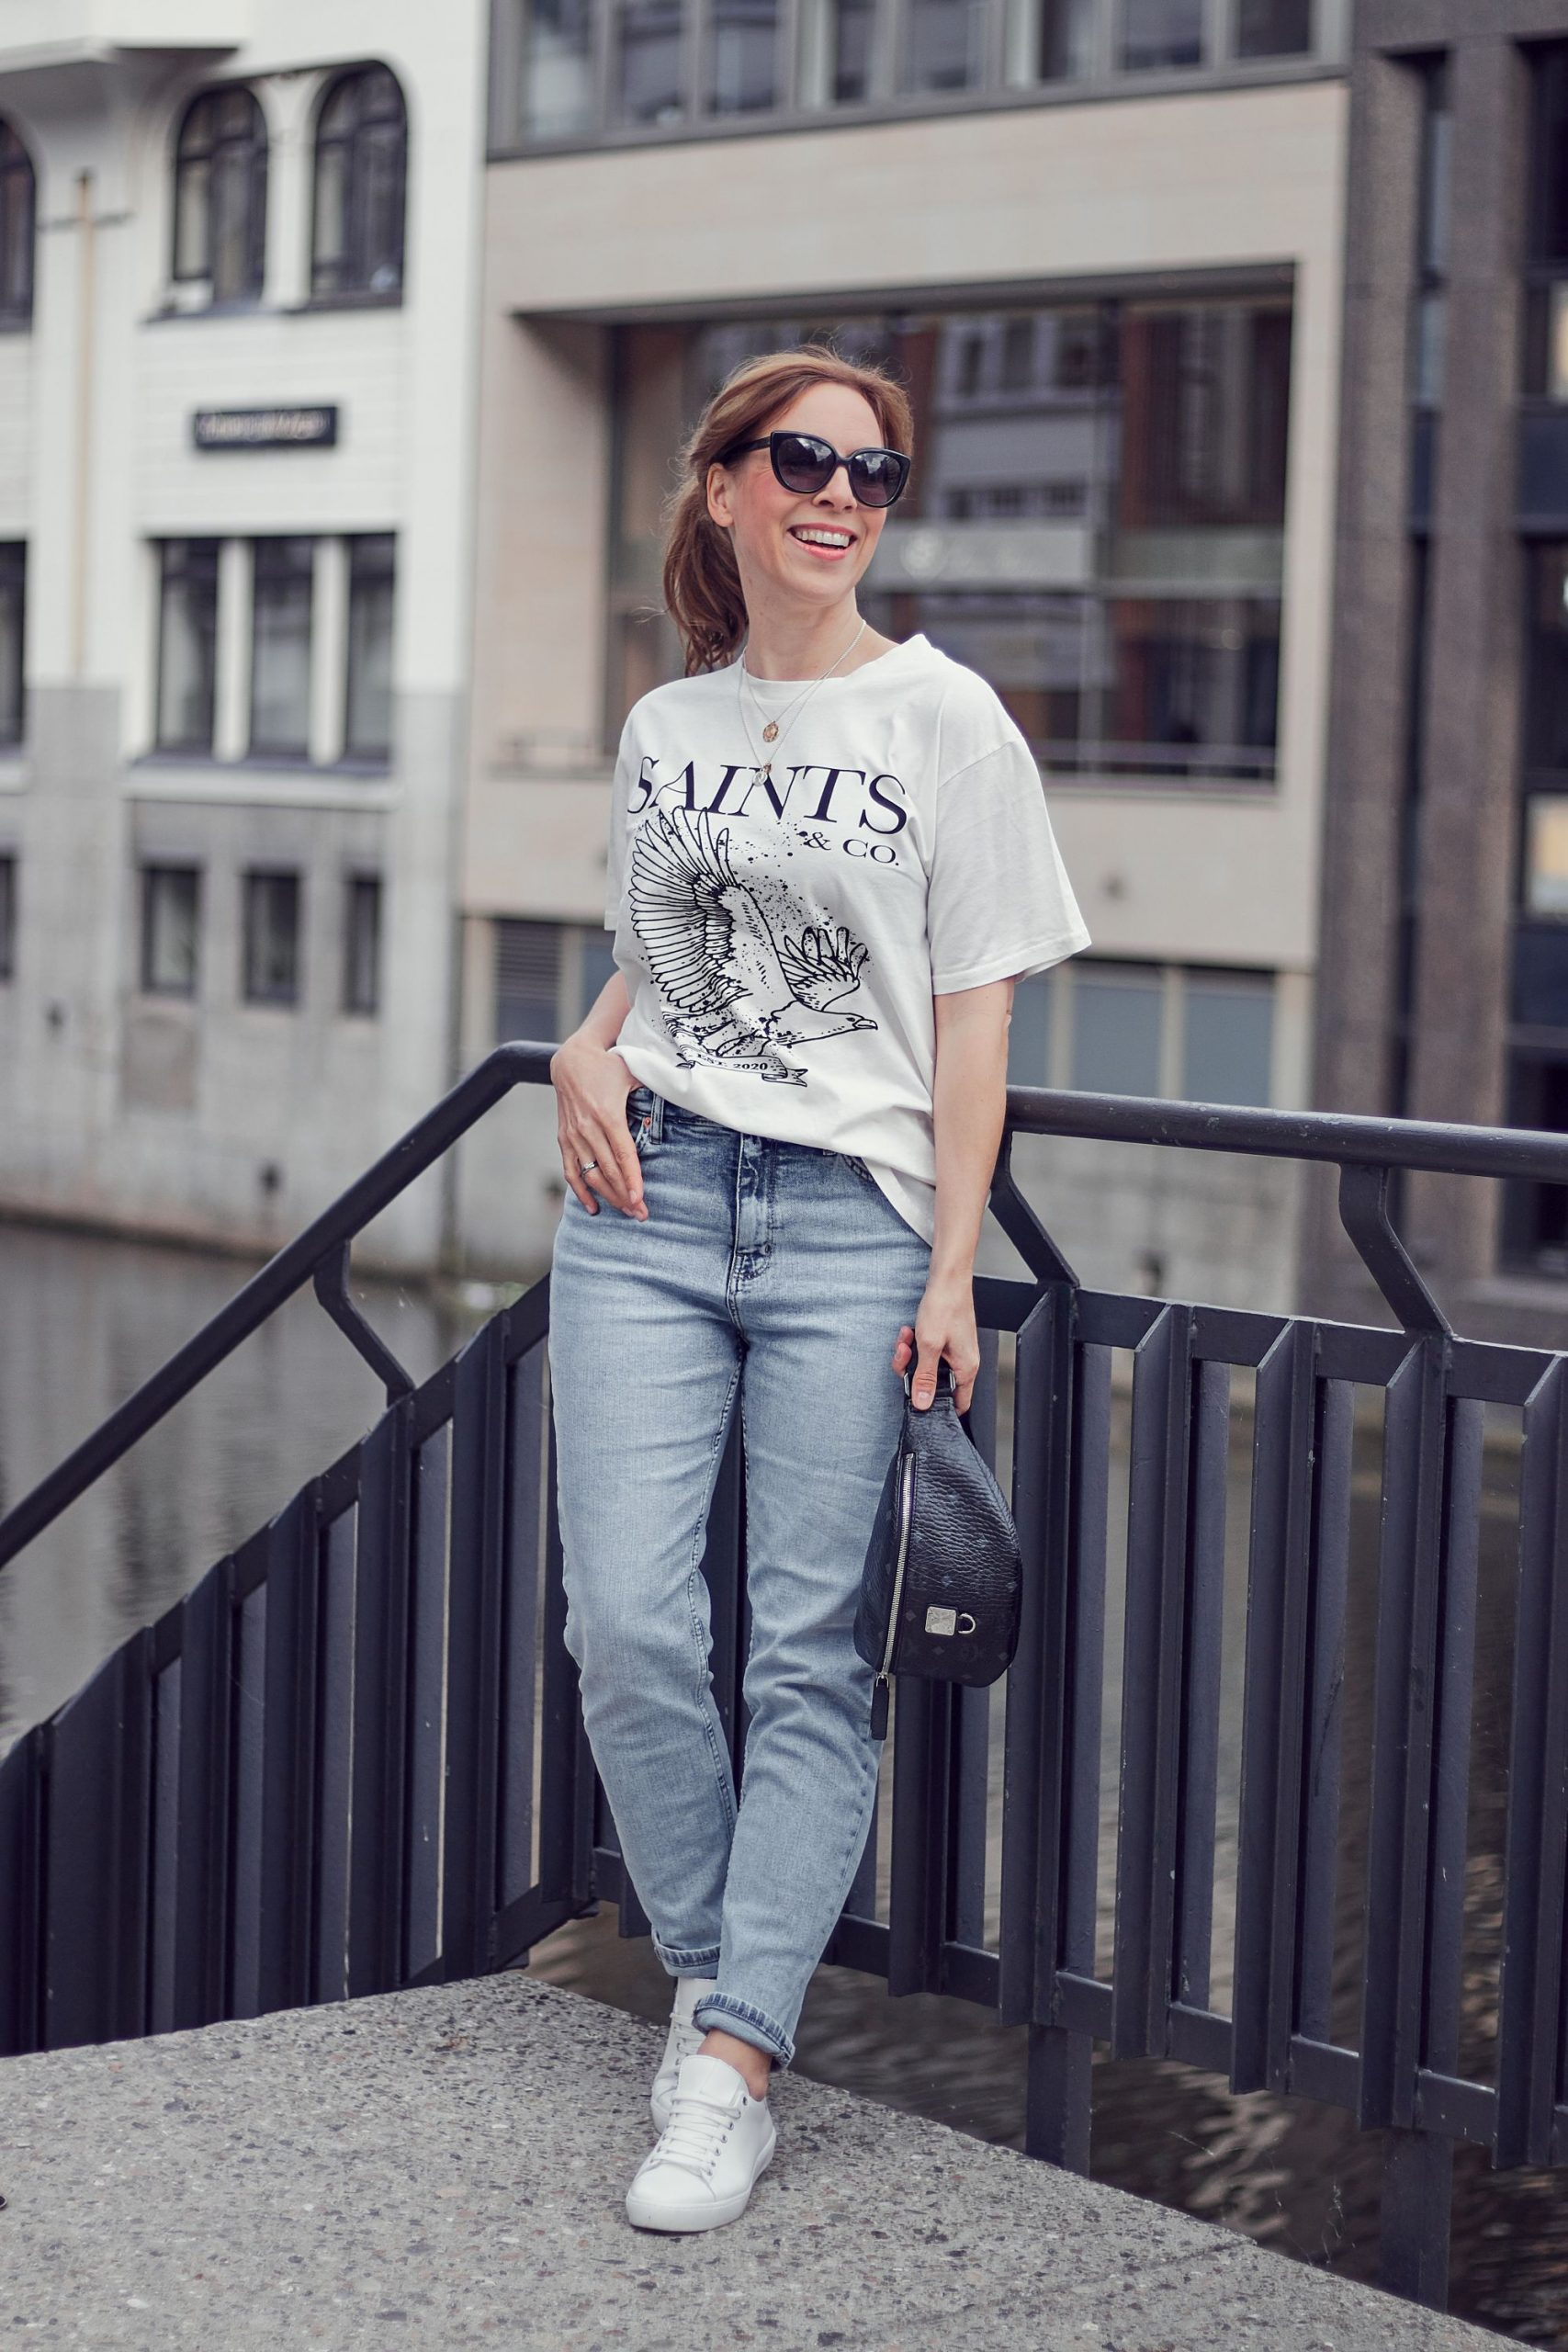 Saints and Co Off-White T-Shirt zu Mom Jeans mit Gürteltasche und Sneakern in weiß.